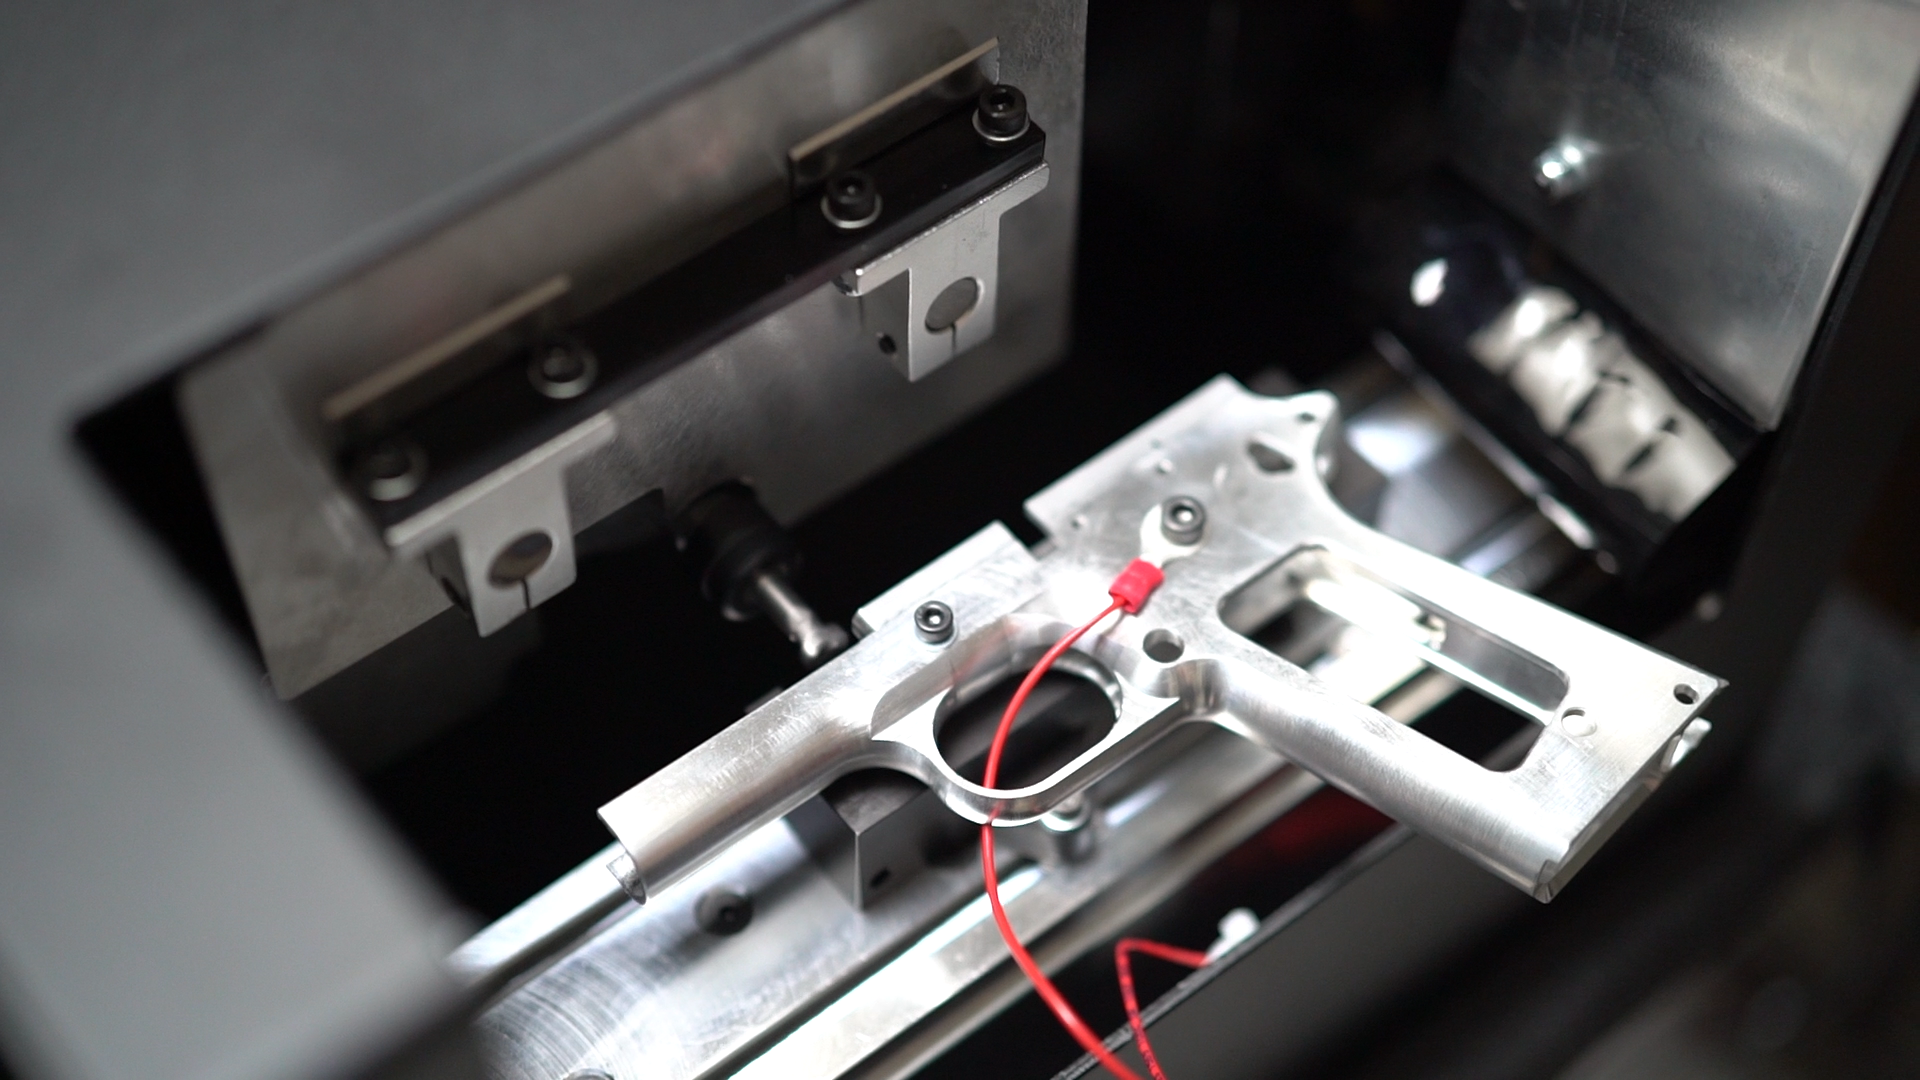 3d print a serial free handgun at home with the latest ghost